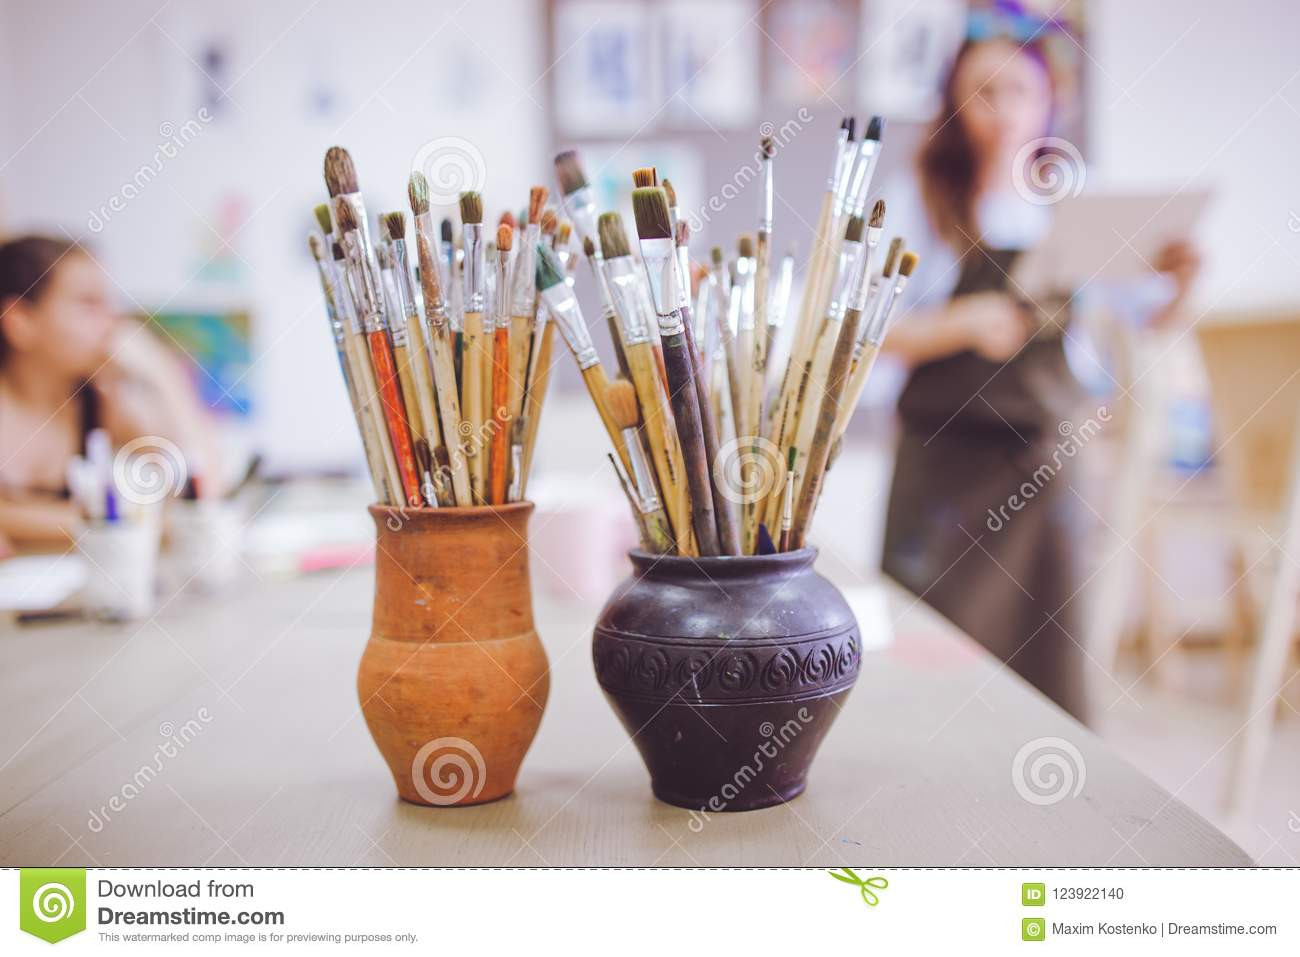 Black Floor Standing Vase Of A Bunch Of Art Brushes Standing In Ceramic Vases On the Table In Regarding Download A Bunch Of Art Brushes Standing In Ceramic Vases On the Table In the